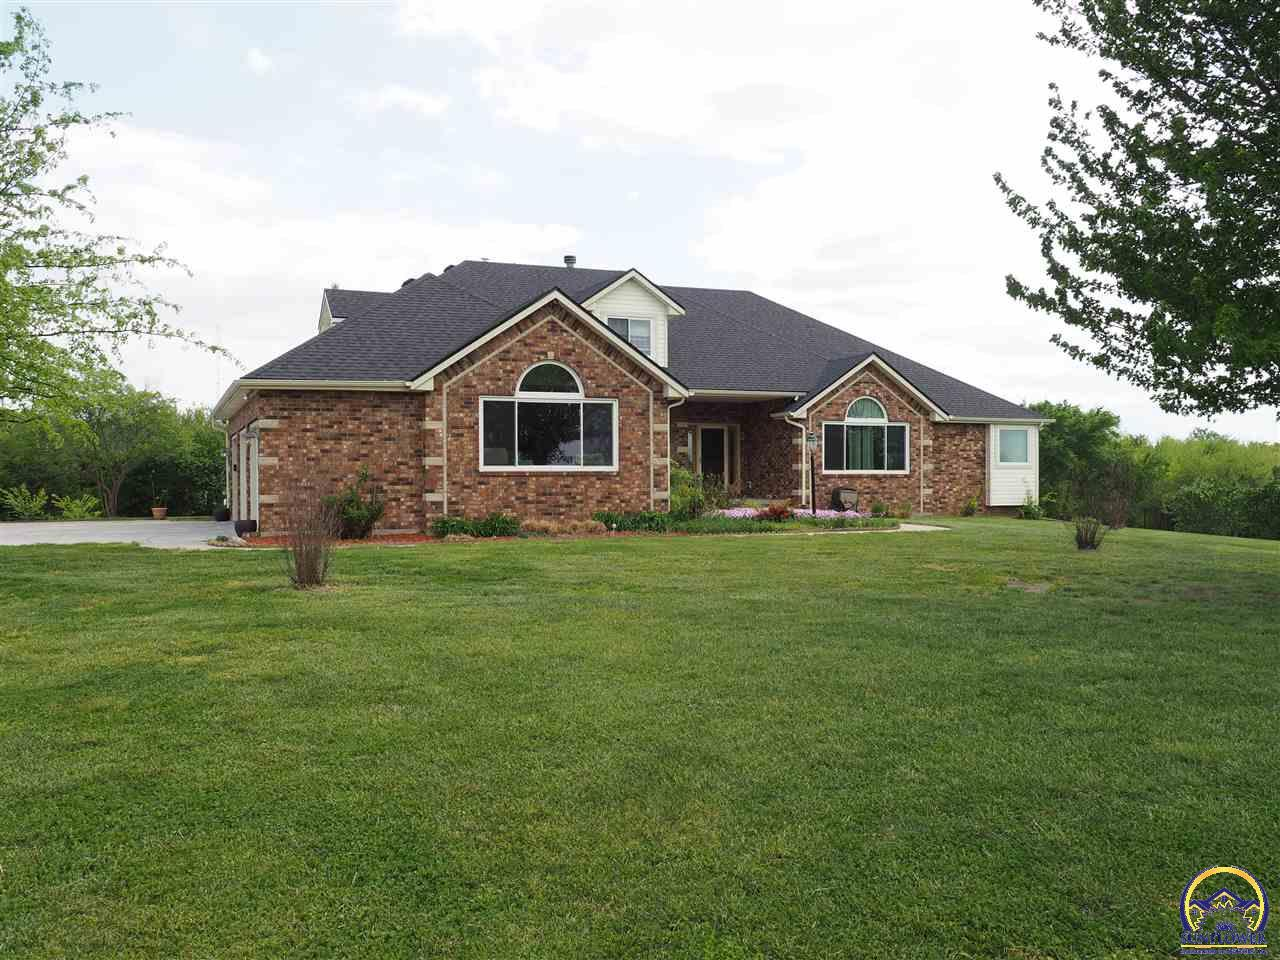 Topeka Area Homes For Sale With A Pool